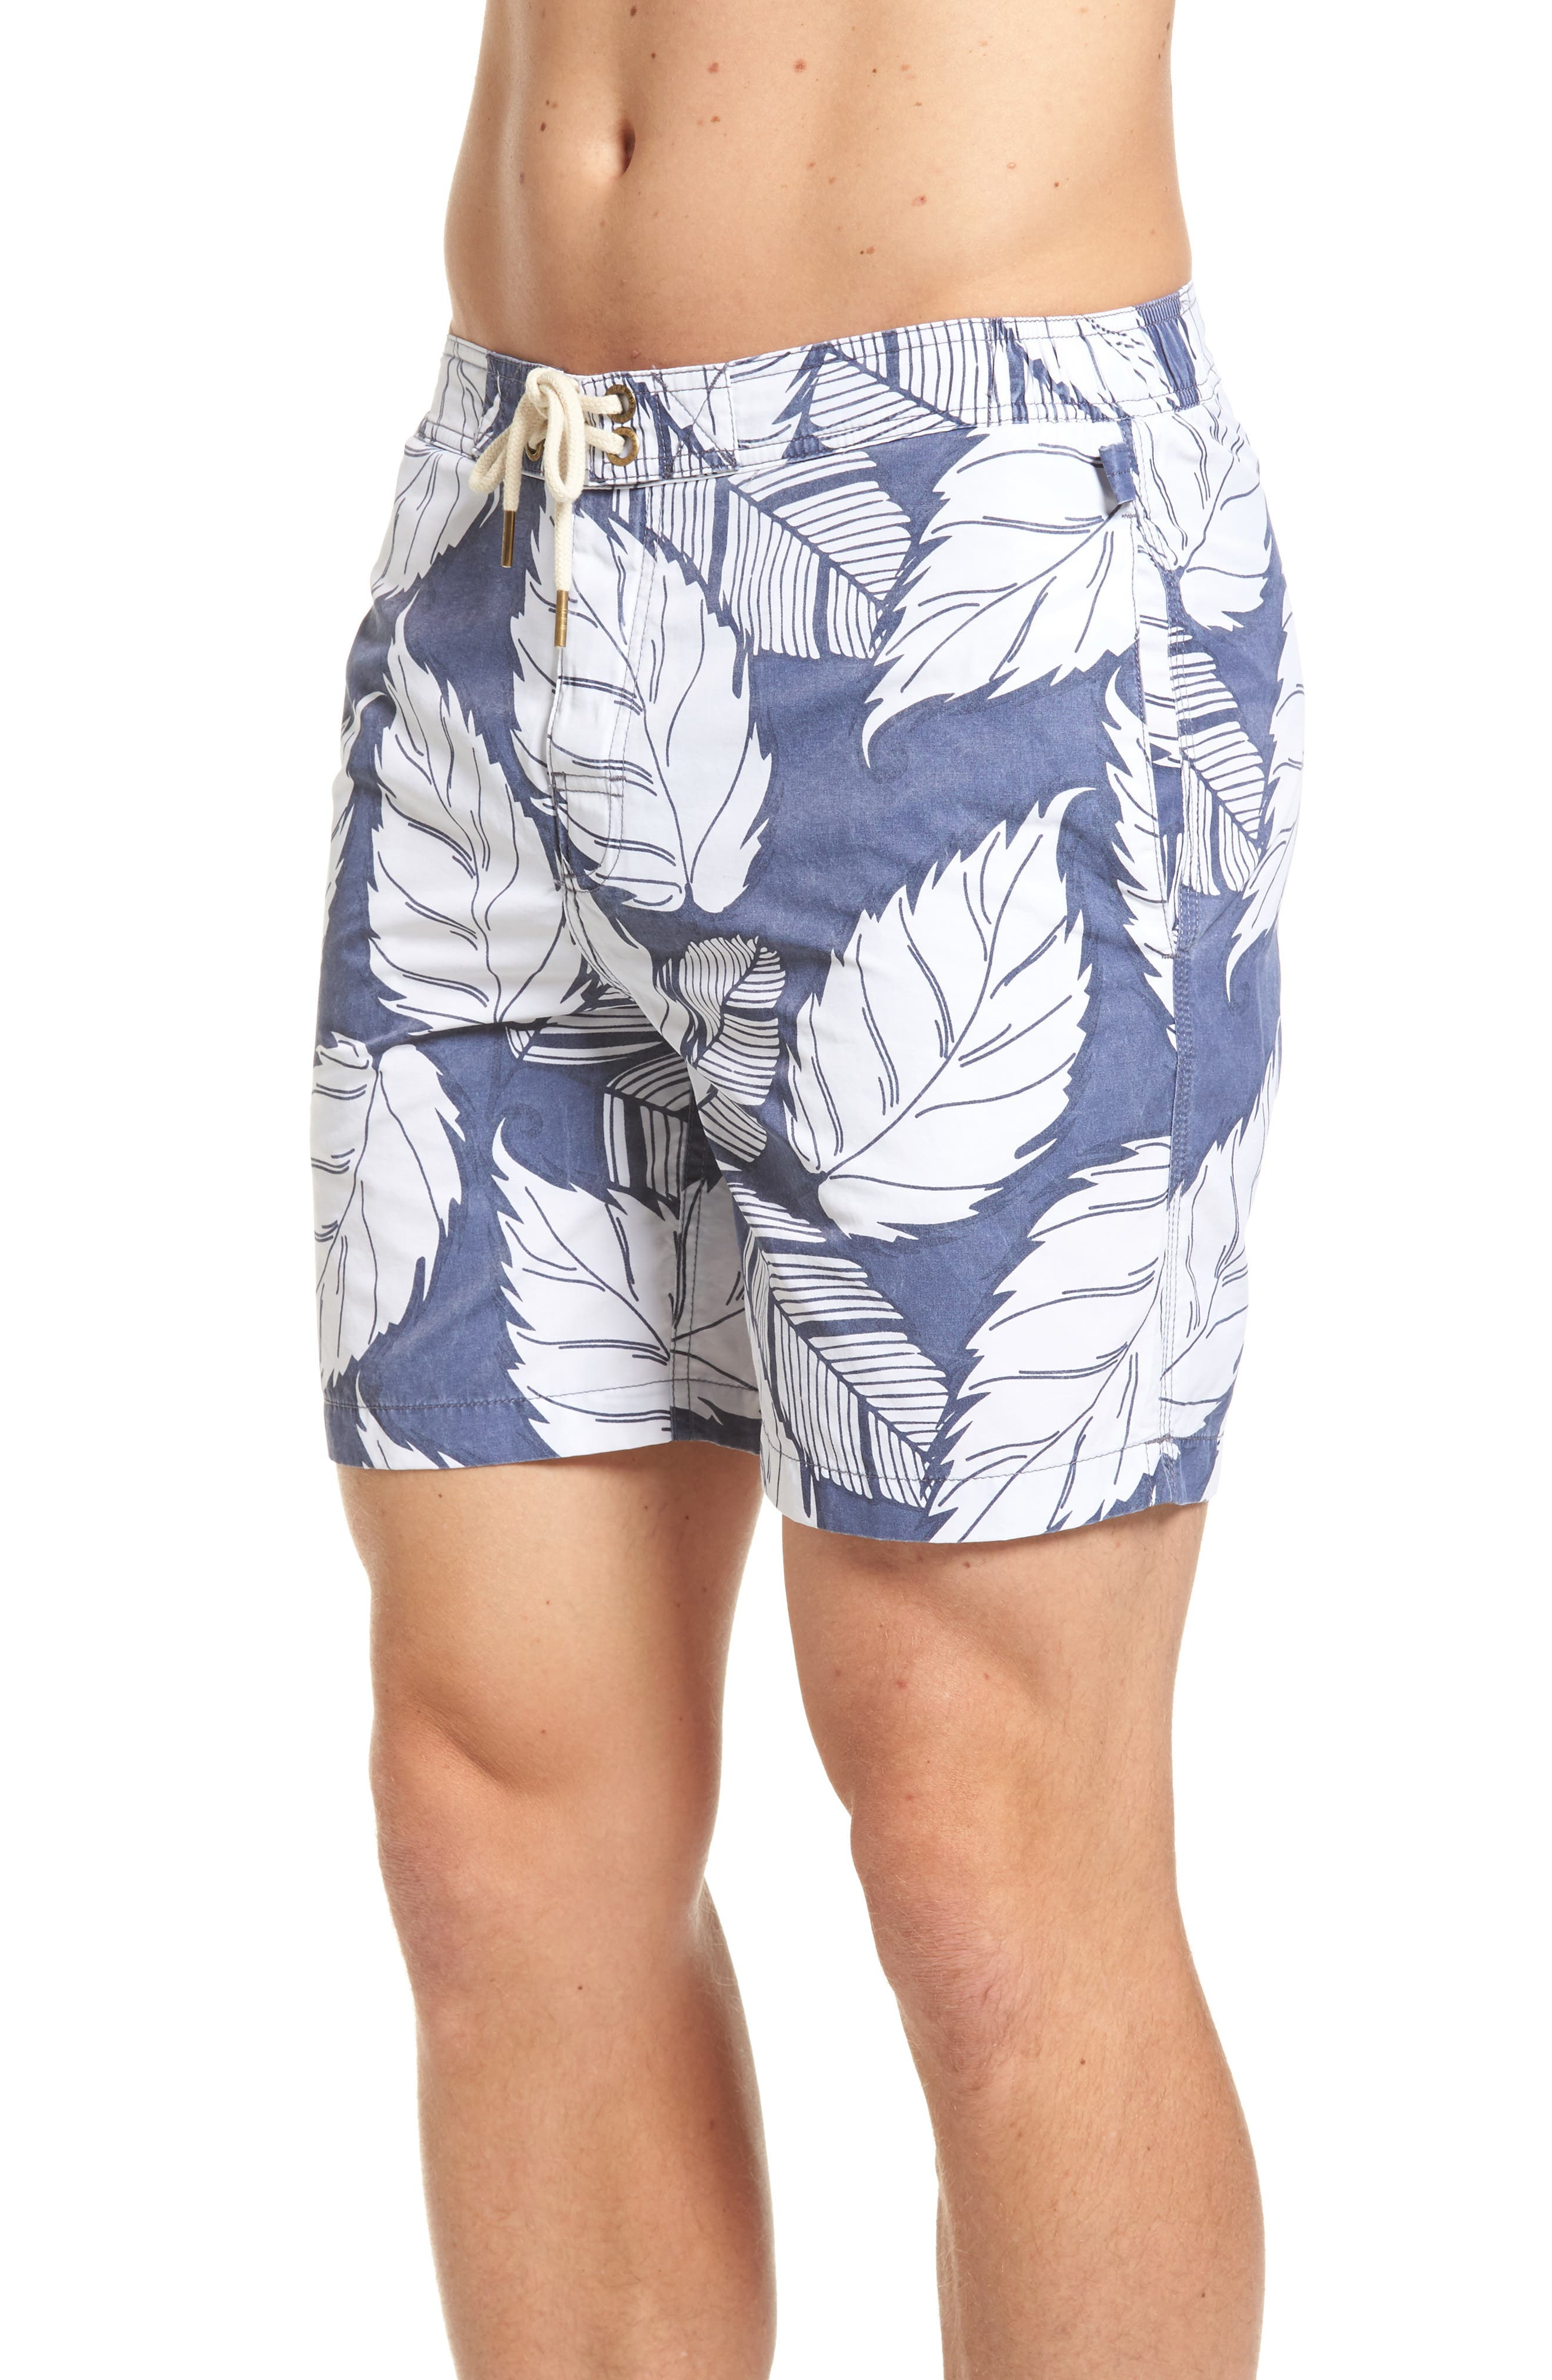 Montauk Board Shorts,                             Alternate thumbnail 3, color,                             Navy